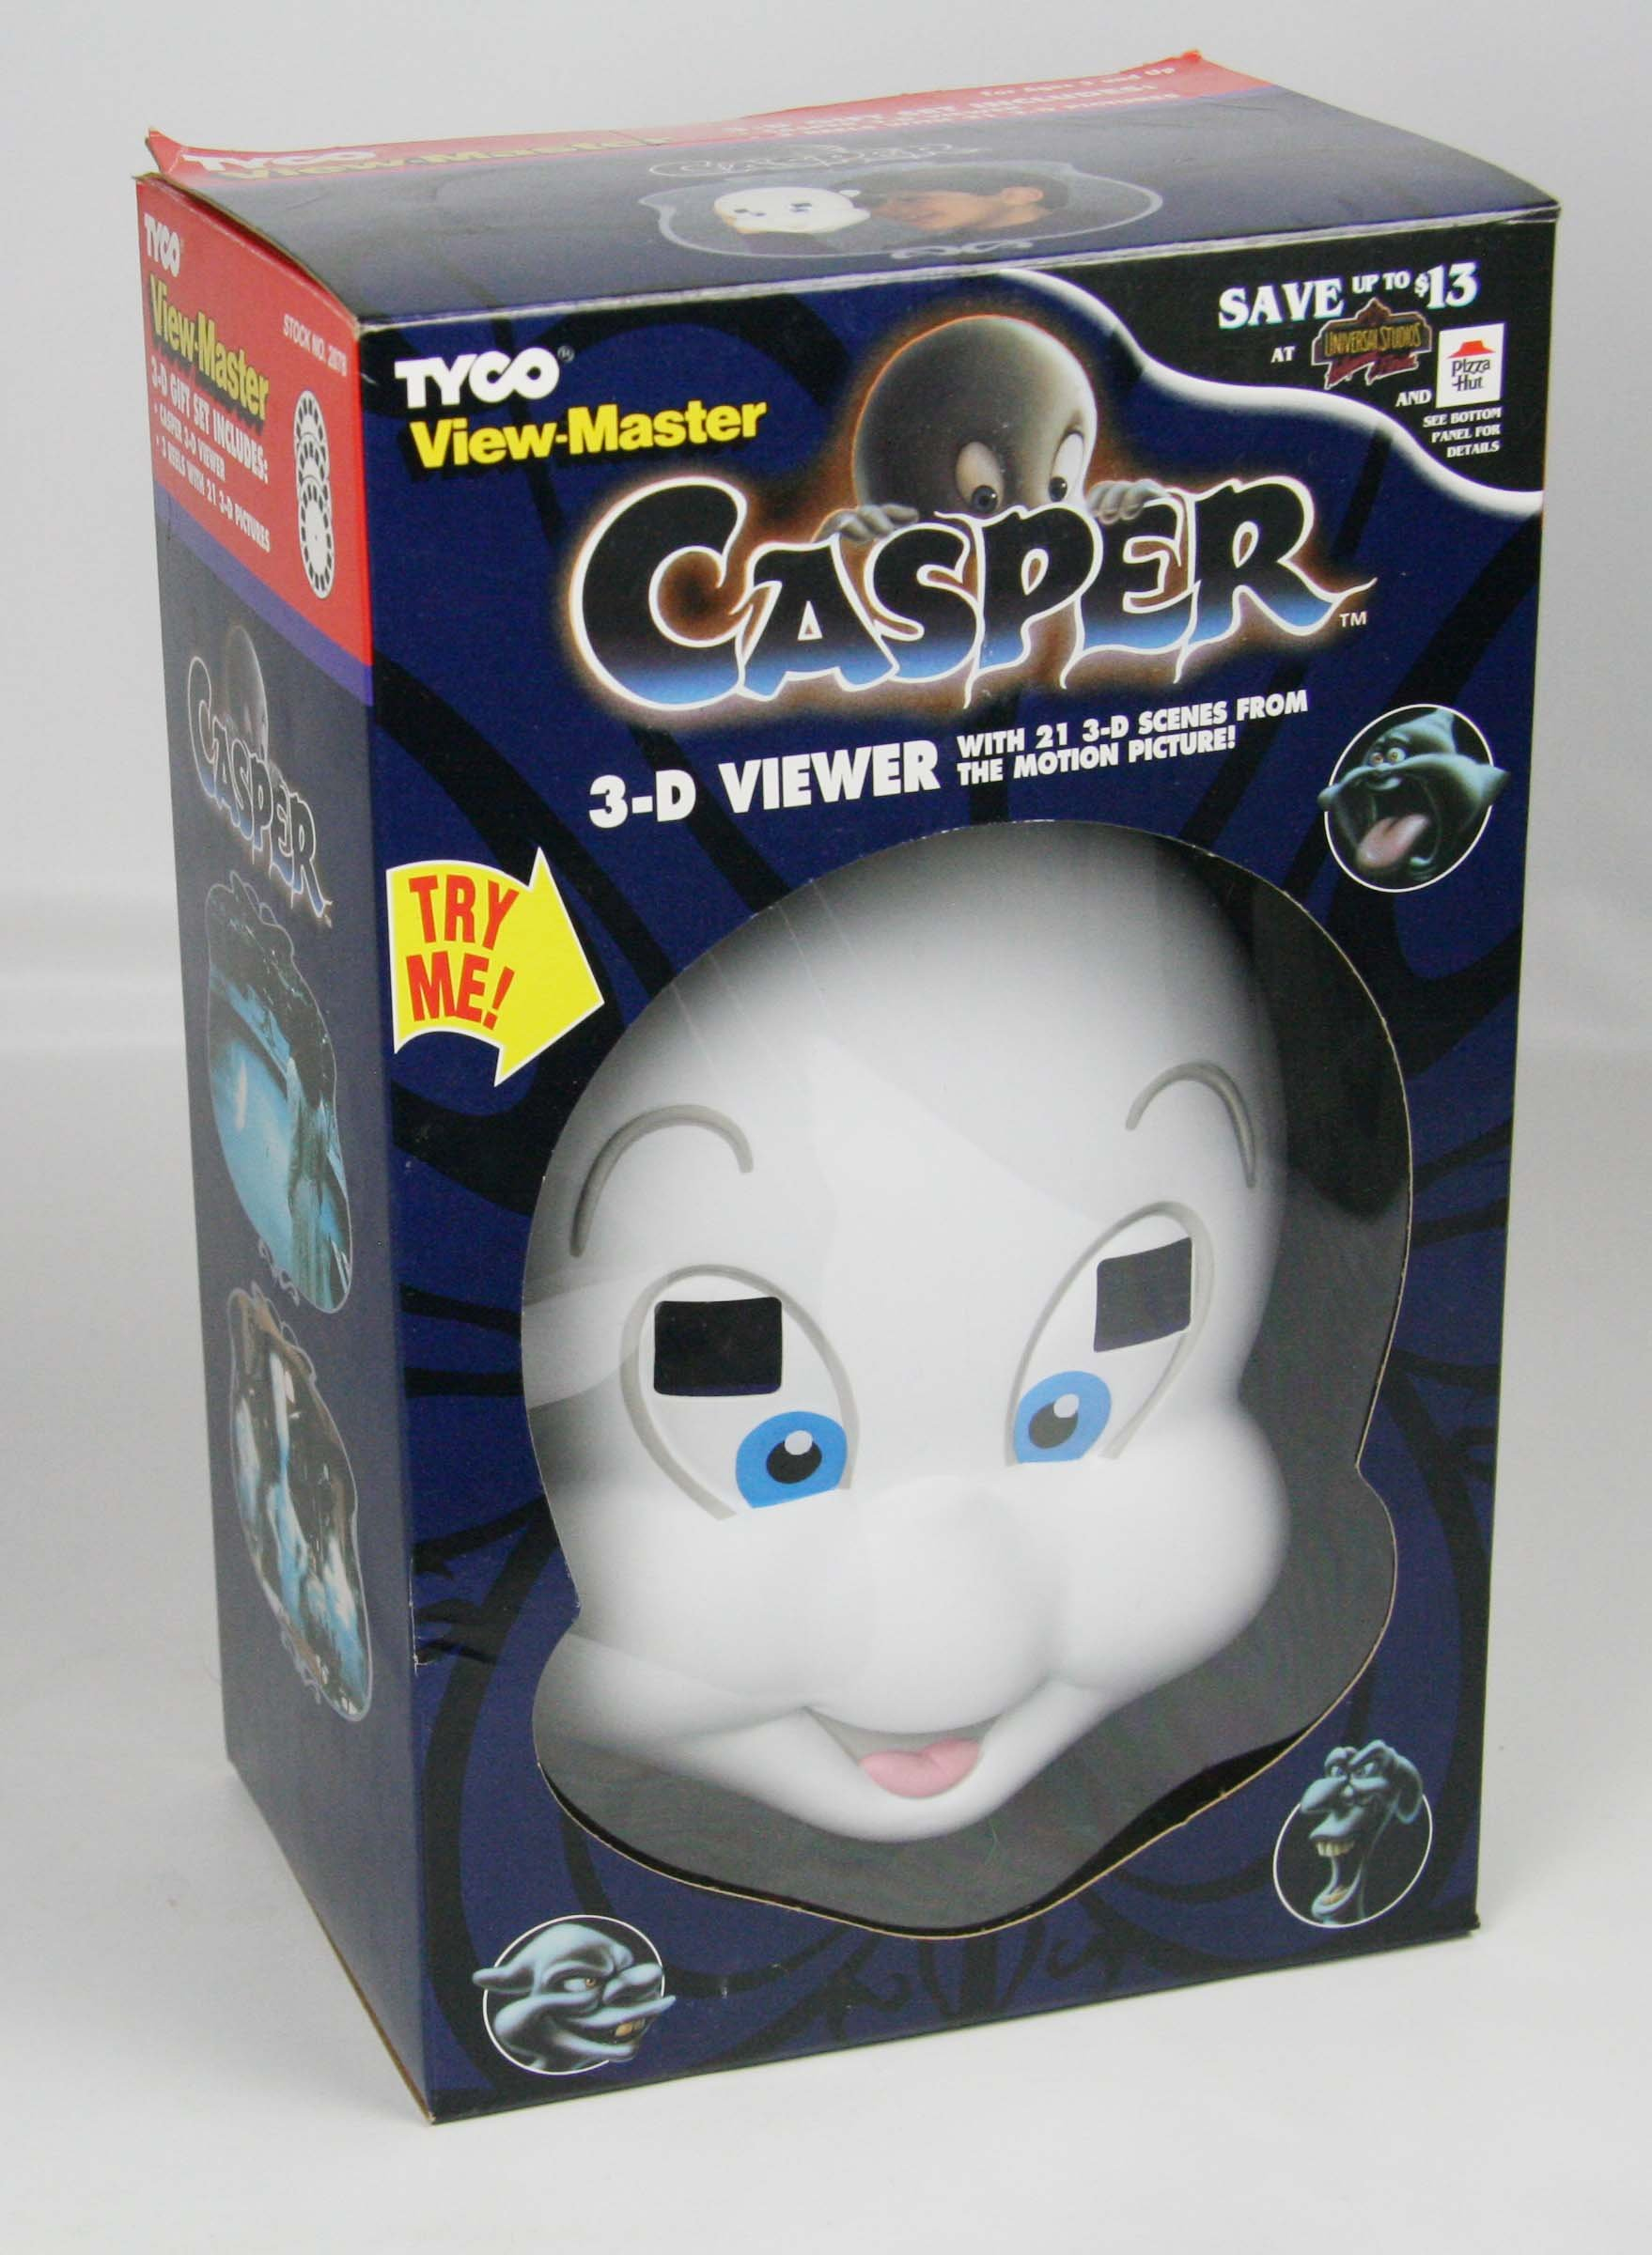 ViewMaster - Casper Character Viewer & 3 reels from 1995 movie - NEW by 3Dstereo Gift Set (Image #2)